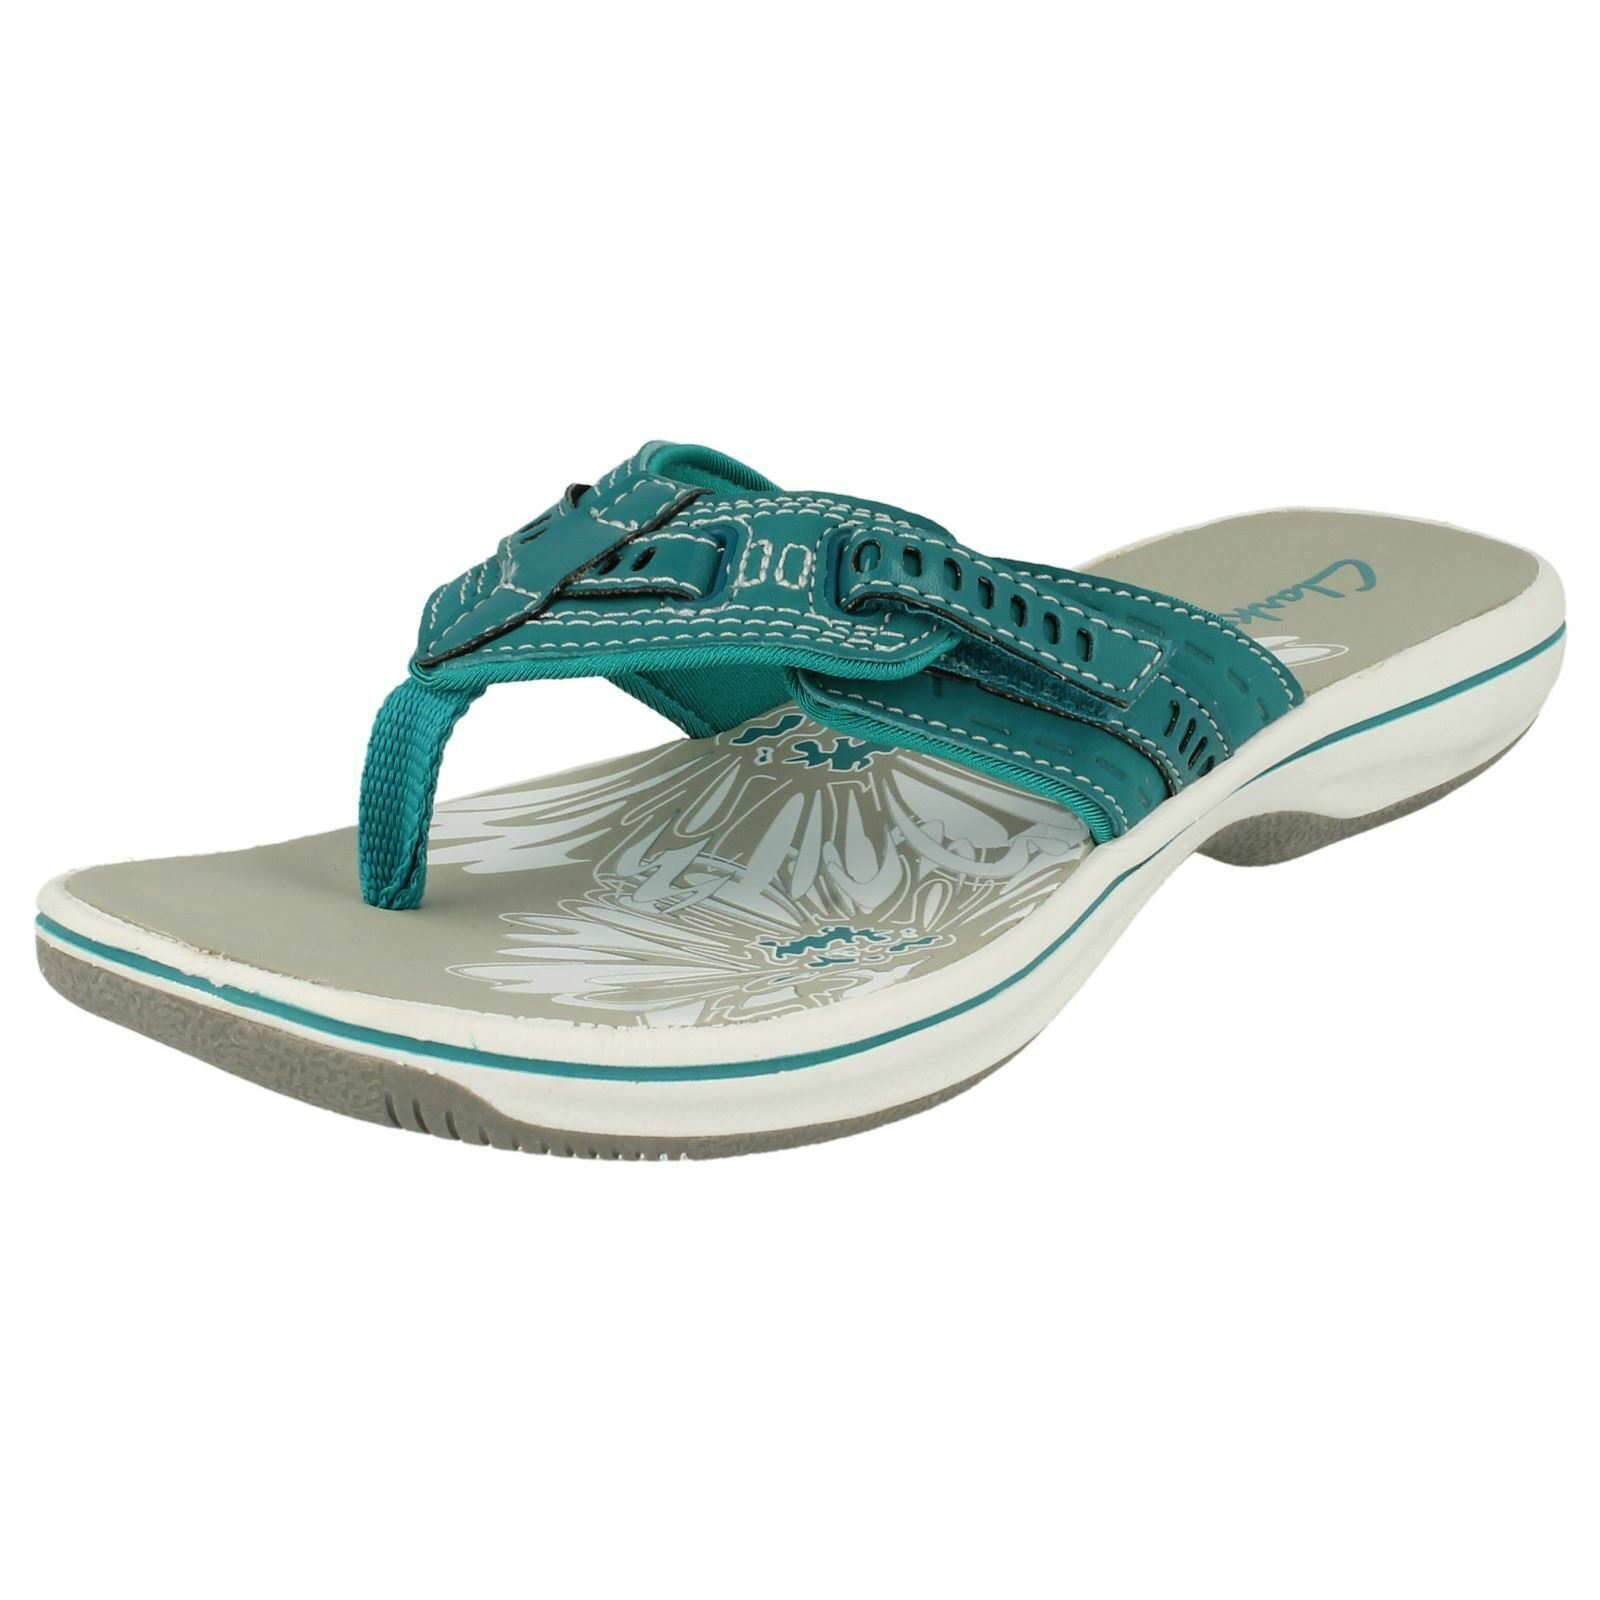 Ladies Clarks Casual Sporty Toe Post Slip On Synthetic Sandals Breeze Sky